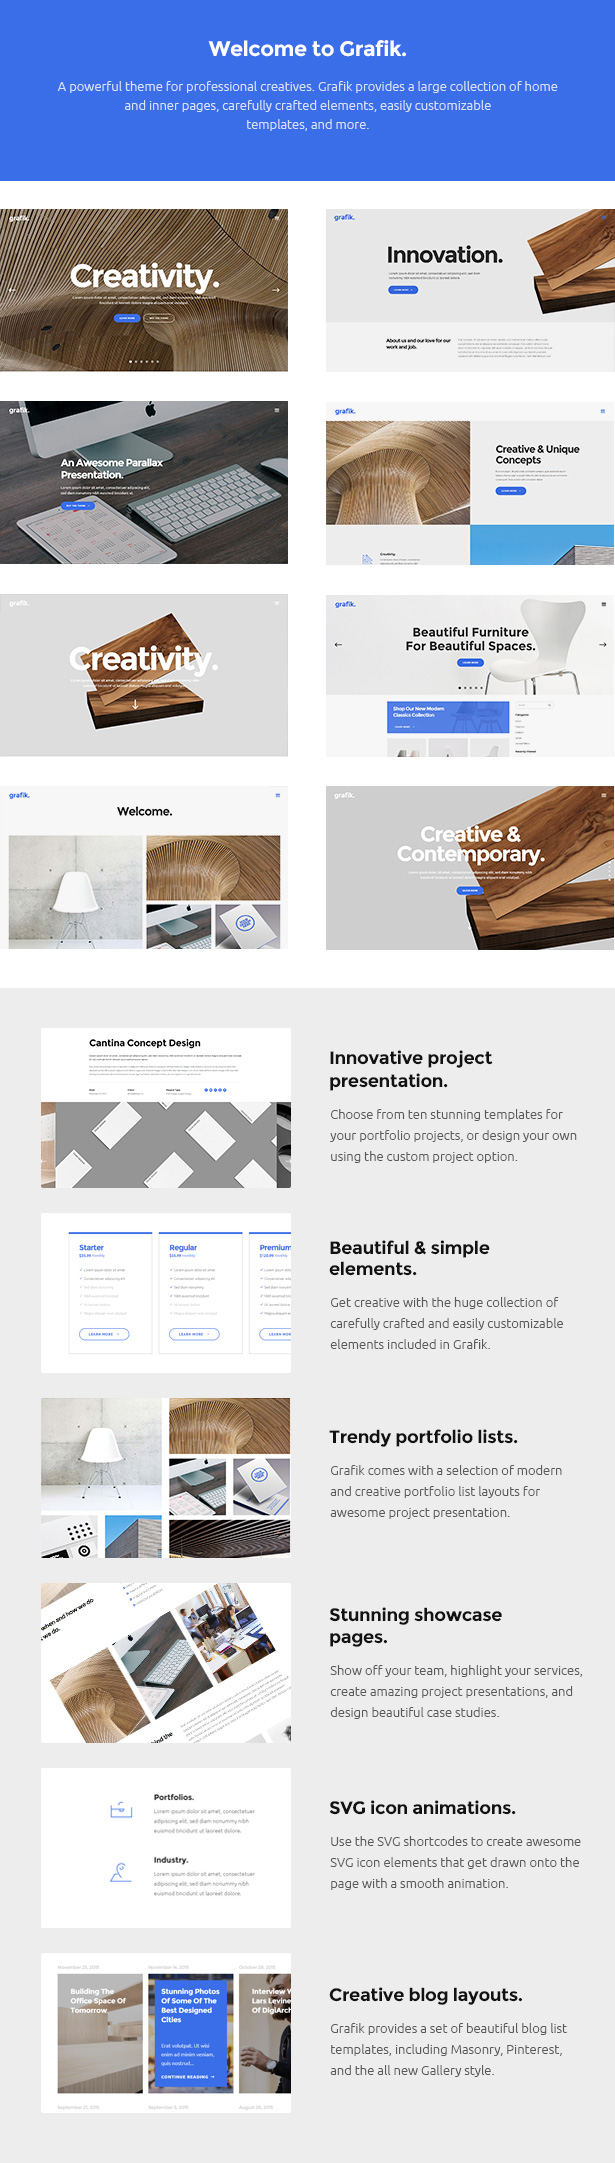 Grafik portfolio design and architecture theme by for Grafik design